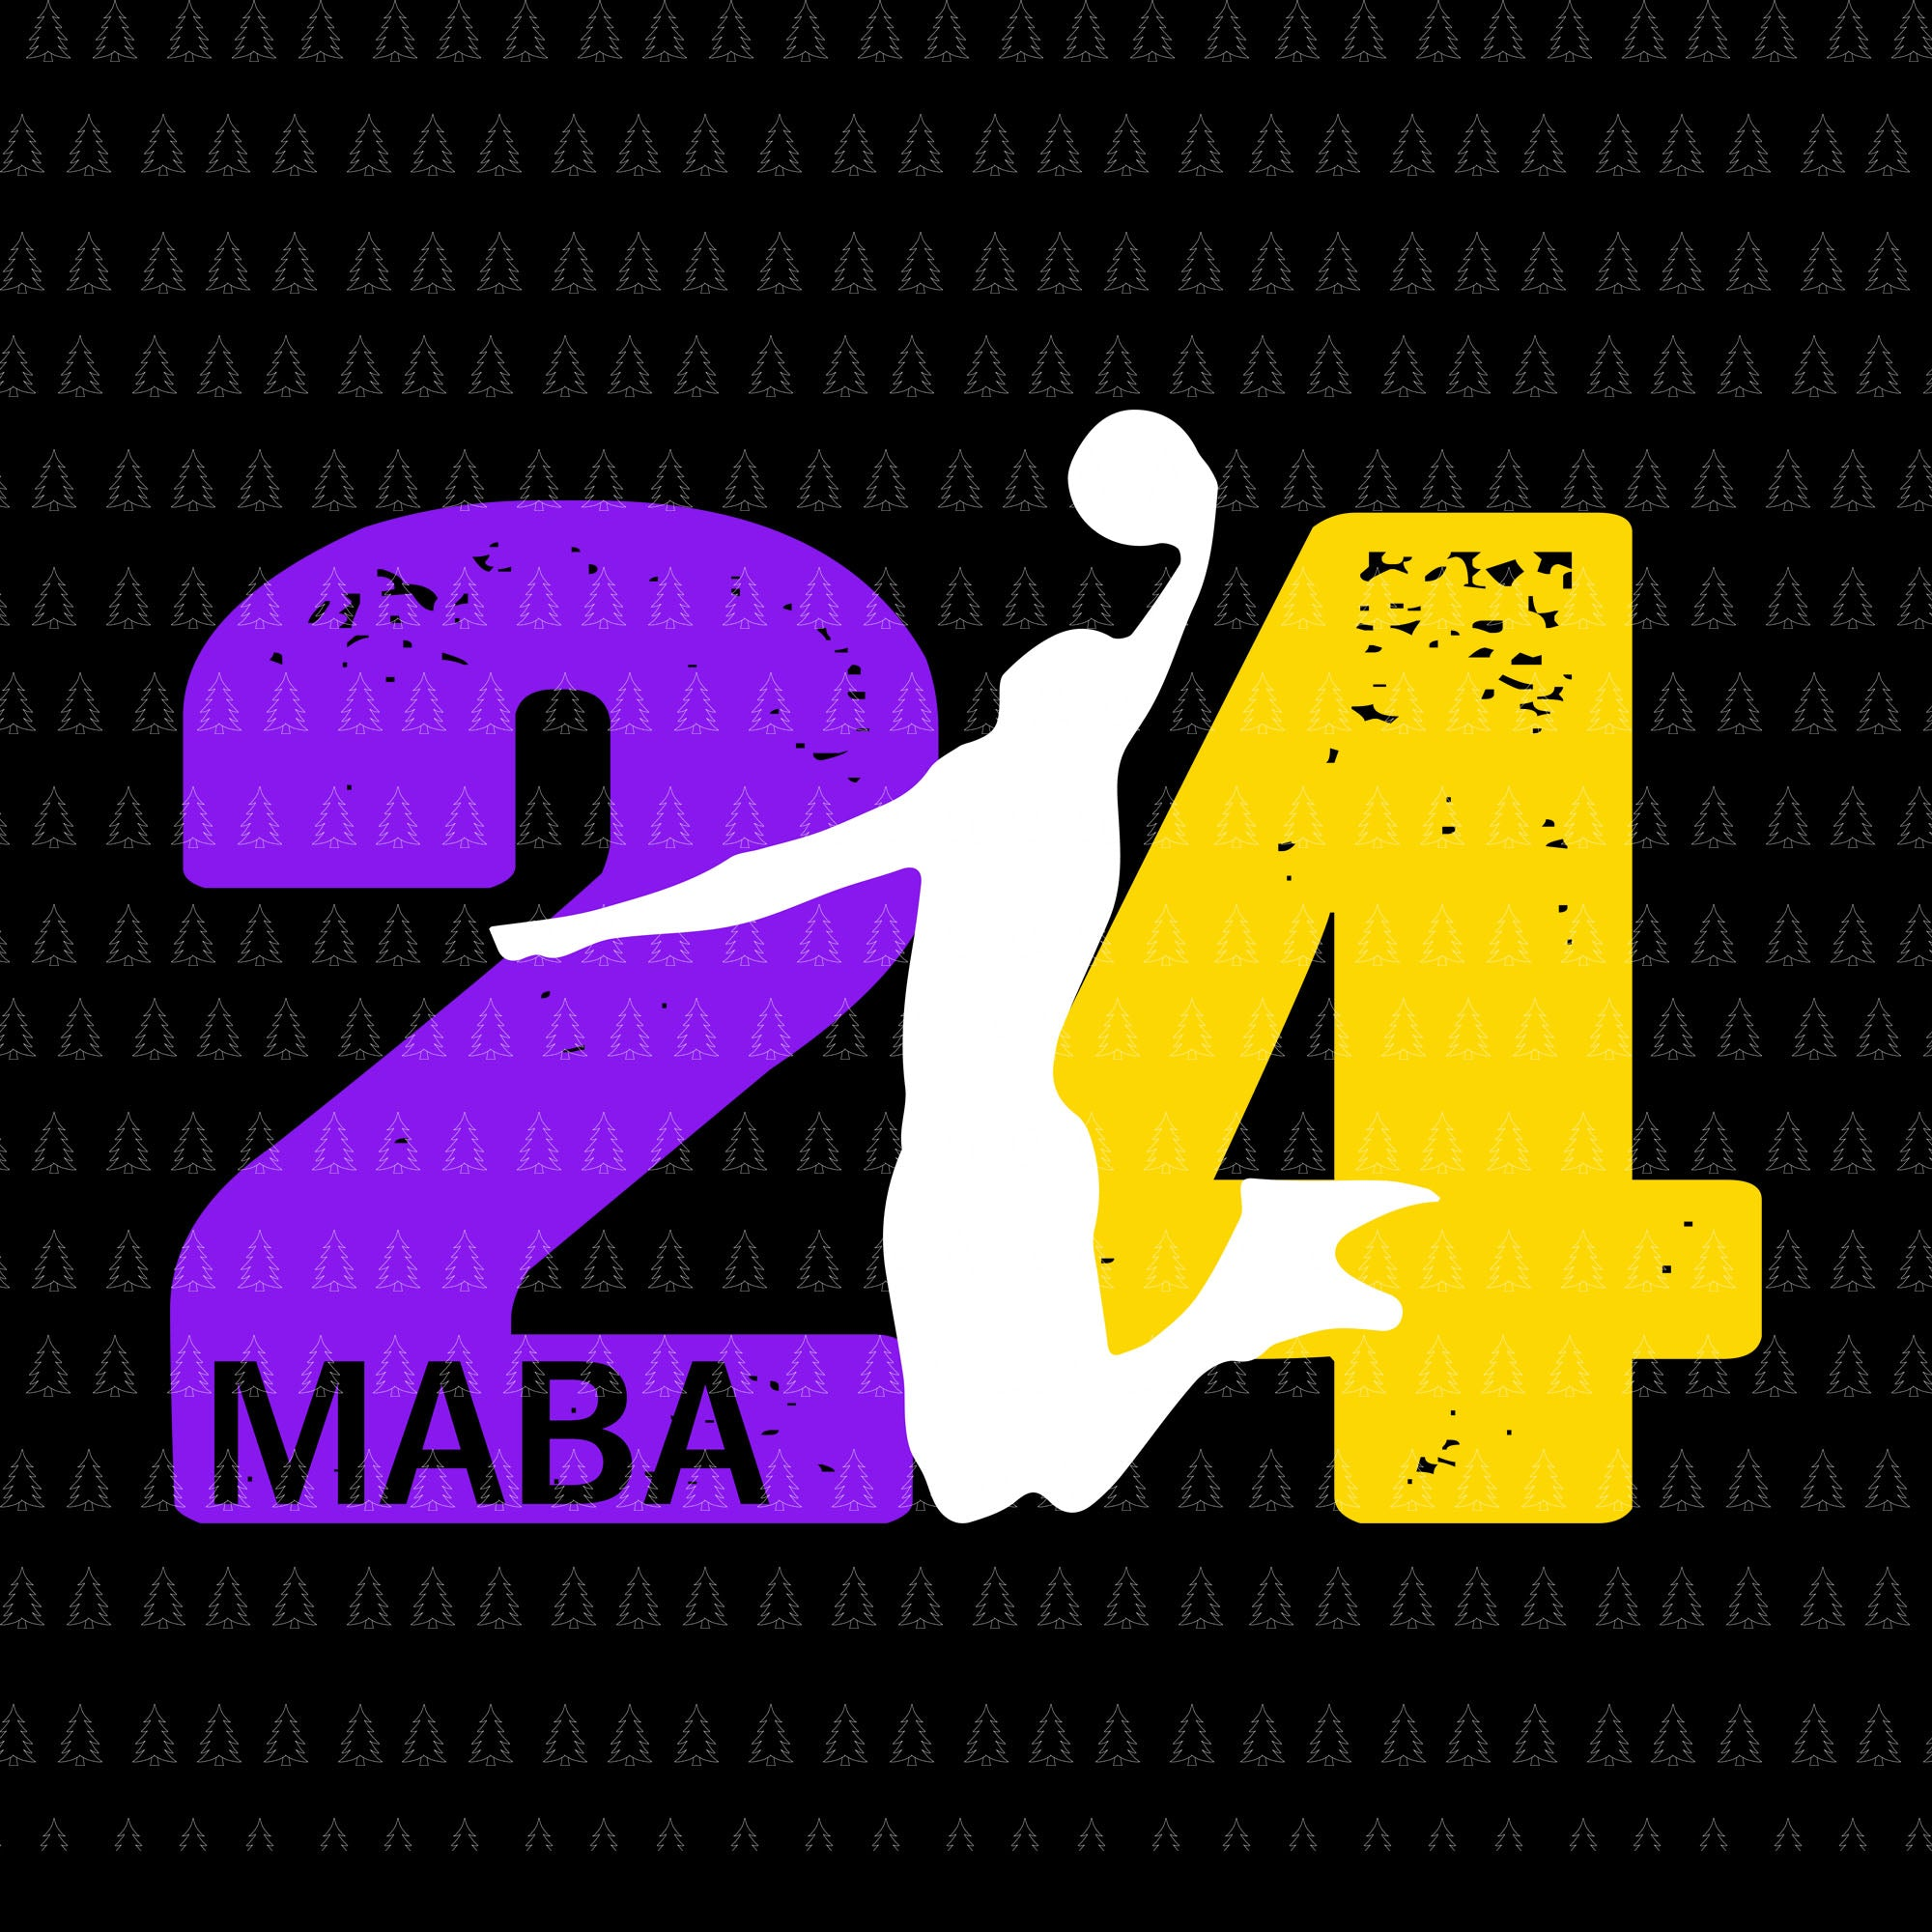 Angel Legend Mamba No.24 Basketball Legends Premium SVG,  kobe bryant,kobe bryant 24,kobe bryant svg,black mamba svg,kobe bryant